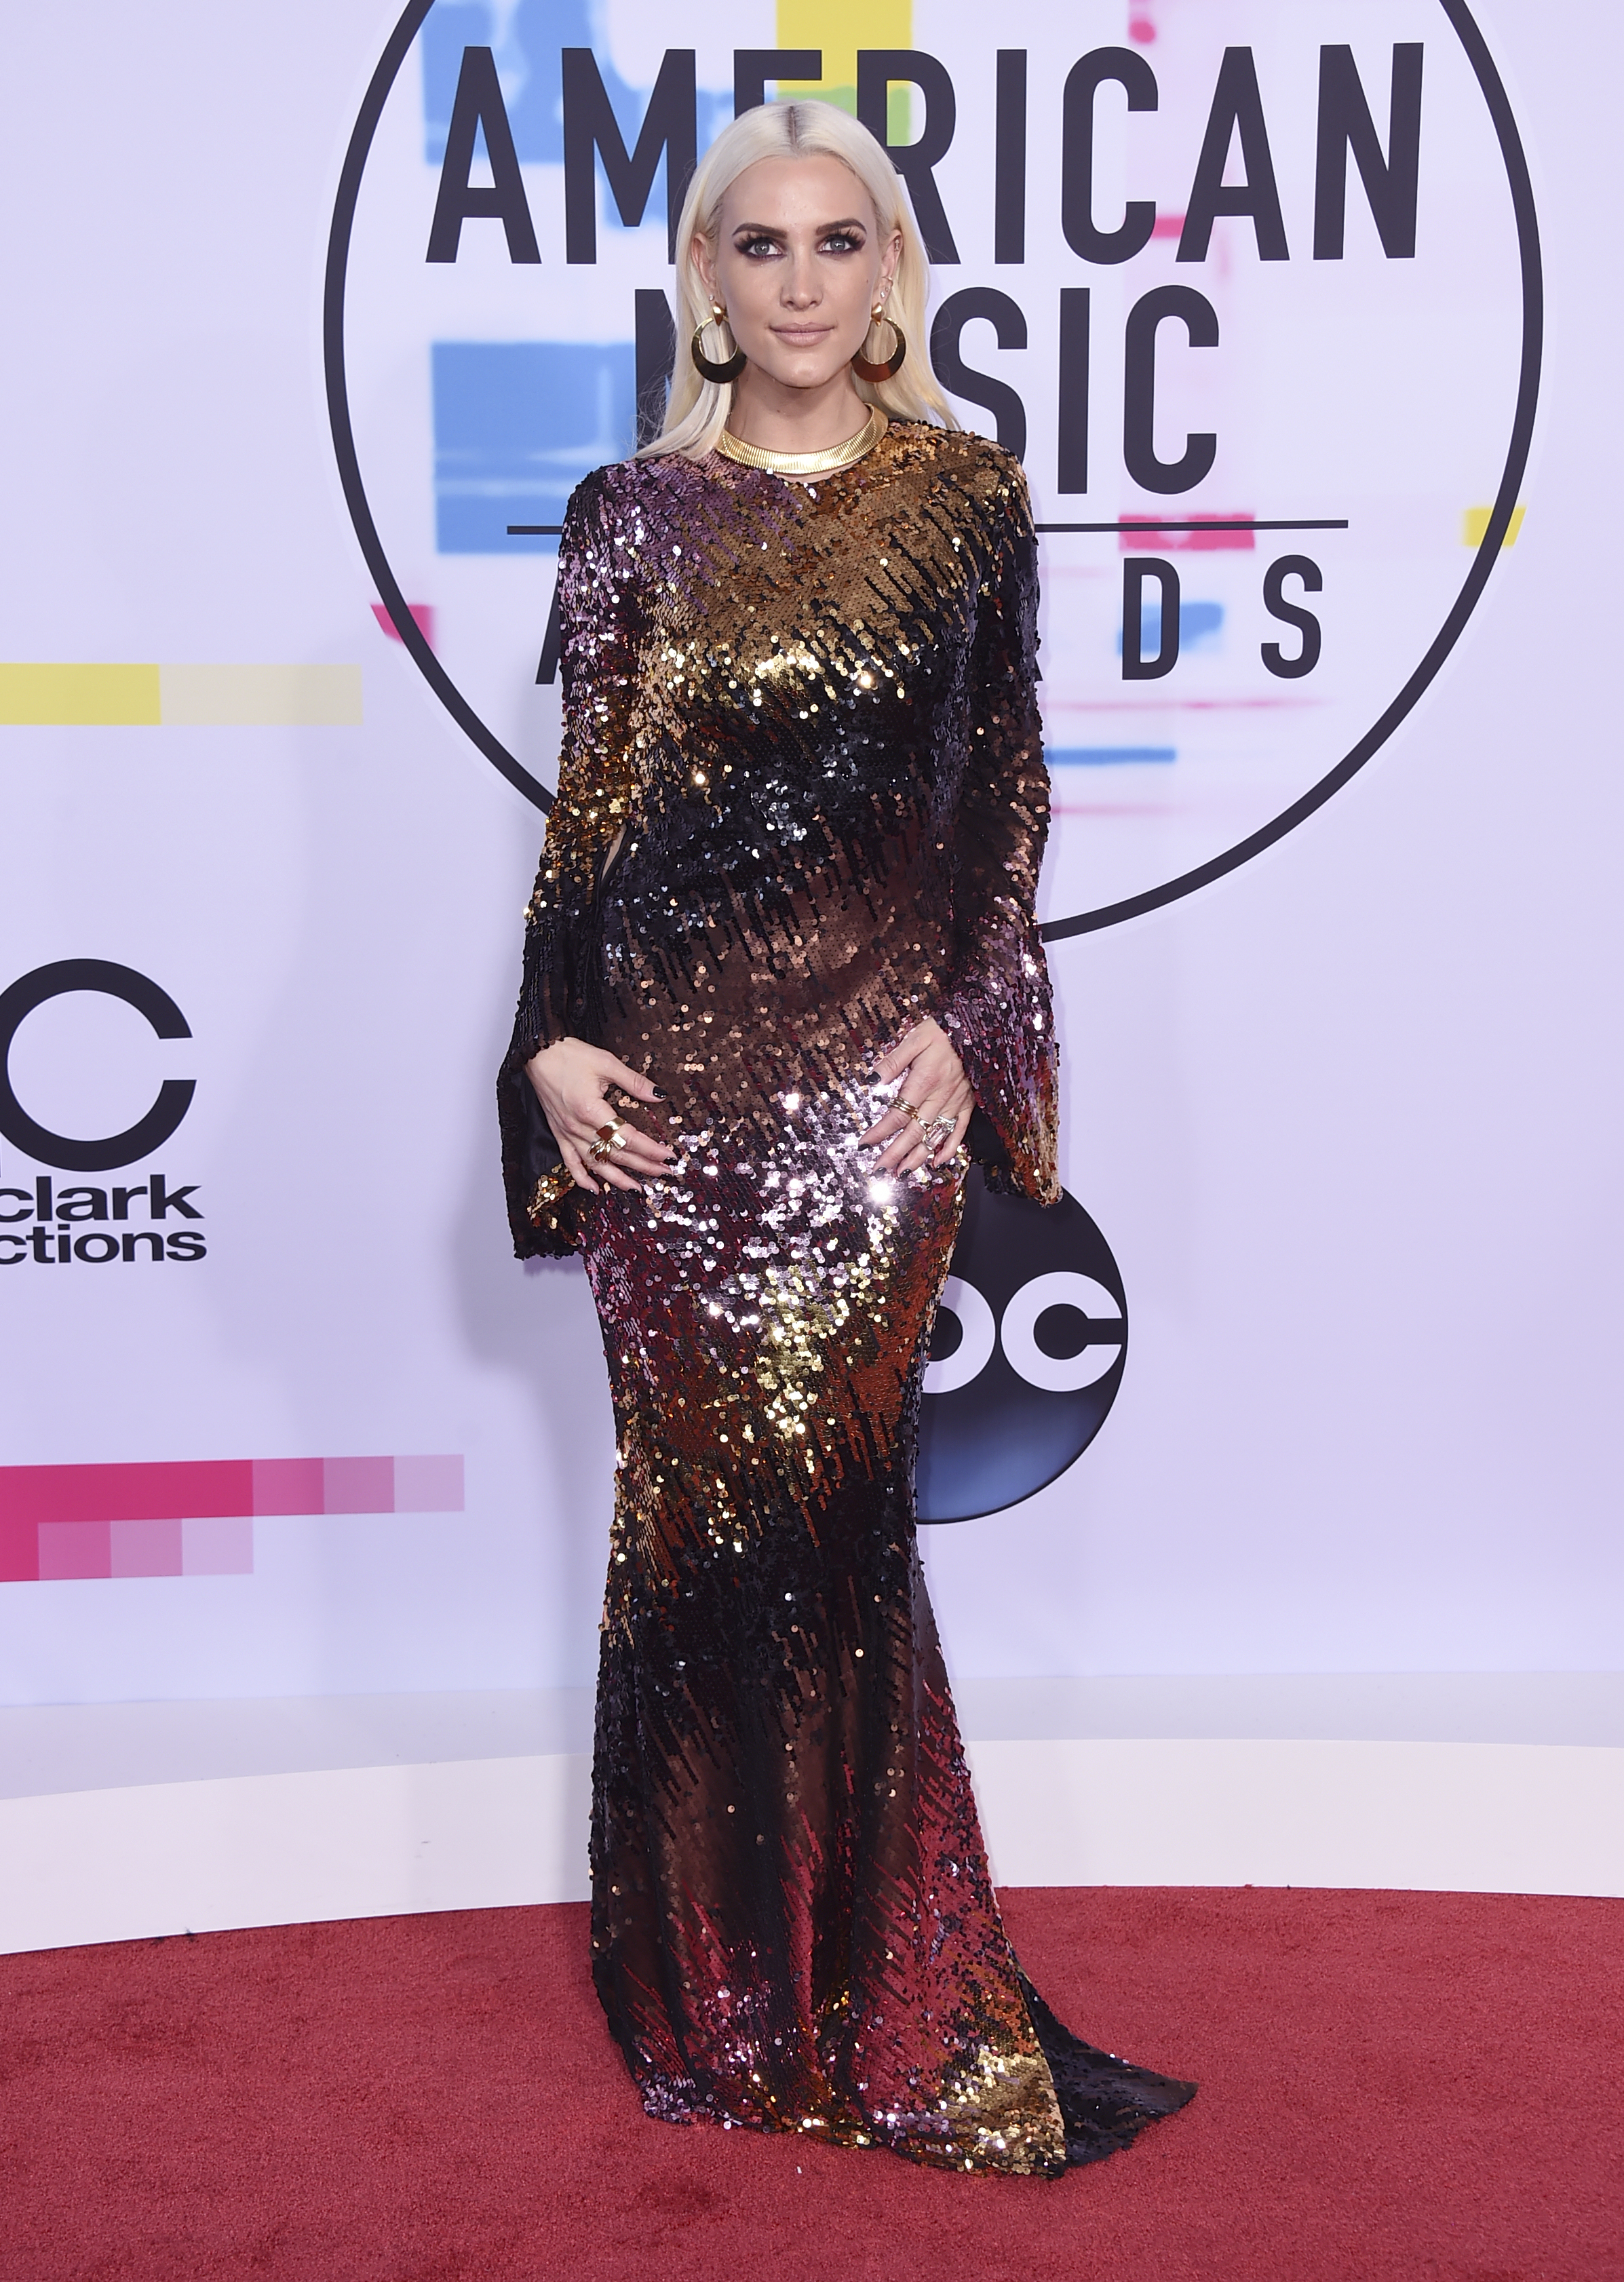 <div class='meta'><div class='origin-logo' data-origin='none'></div><span class='caption-text' data-credit='Jordan Strauss/Invision/AP'>Ashlee Simpson arrives at the American Music Awards at the Microsoft Theater on Sunday, Nov. 19, 2017, in Los Angeles.</span></div>